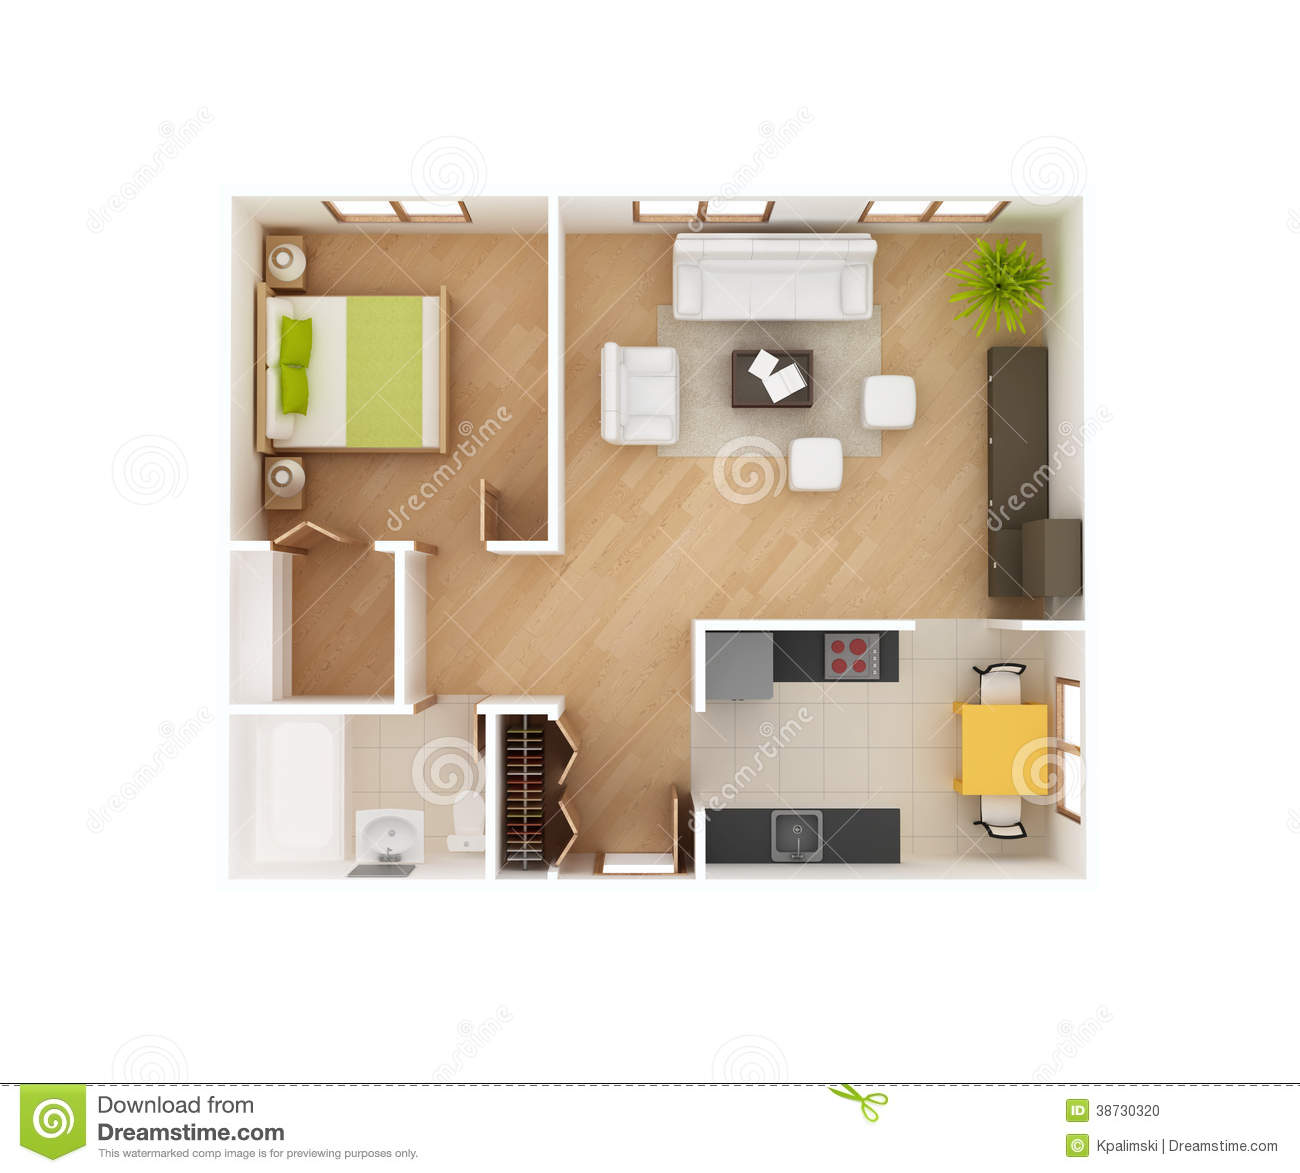 Basic 3d house floor plan top view stock illustration for View house plans online